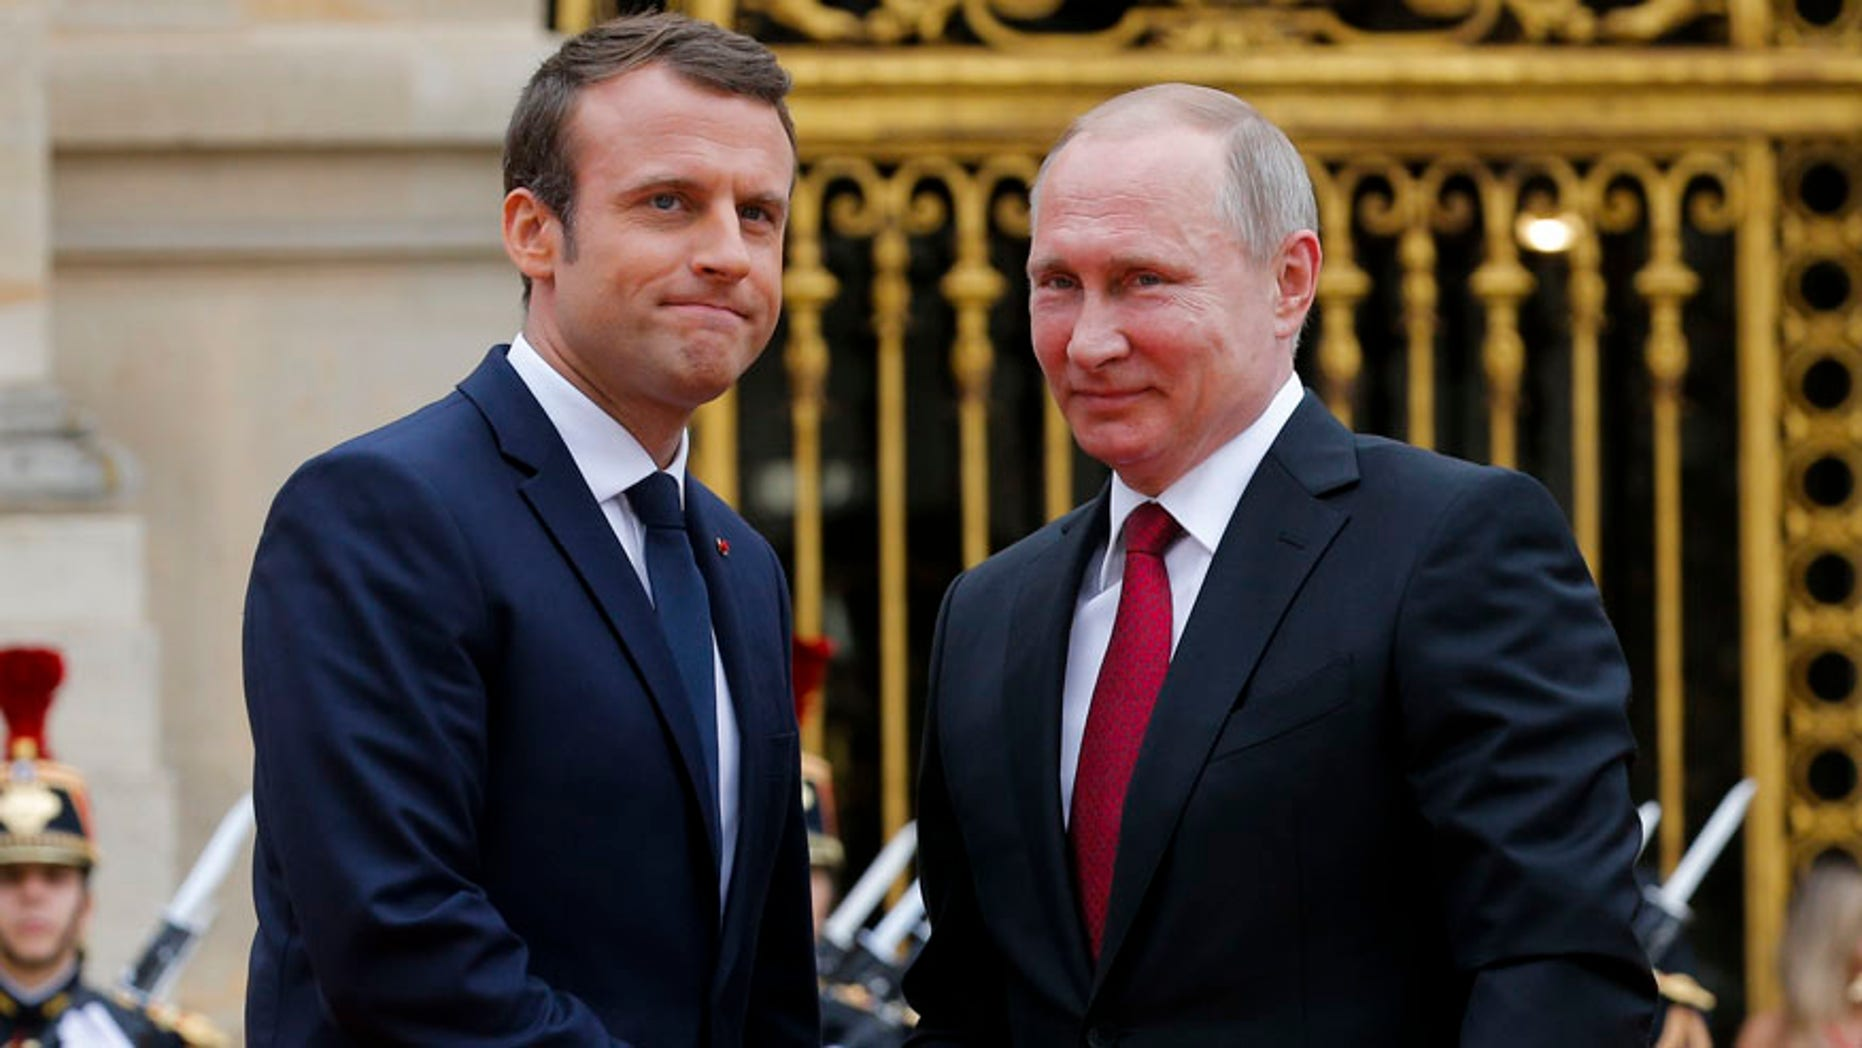 May 29, 2016: Russian President Vladimir Putin, right, is welcomed by French President Emmanuel Macron at the Palace of Versailles, near Paris, France.